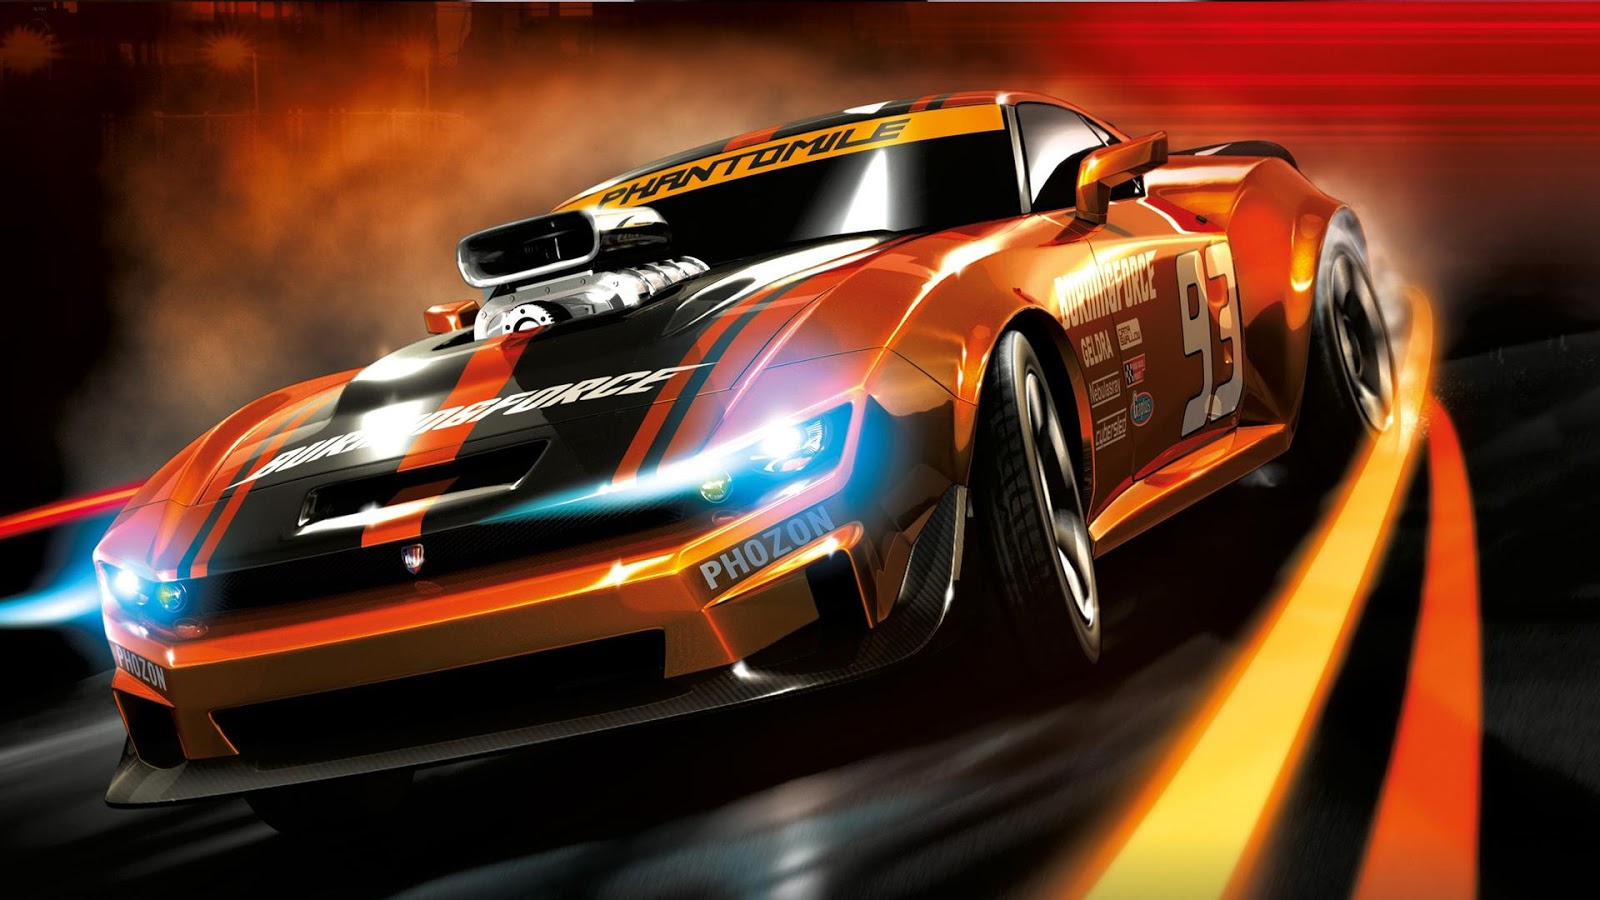 Racing Cars Live Wallpaper   Android Apps on Google Play 1600x900